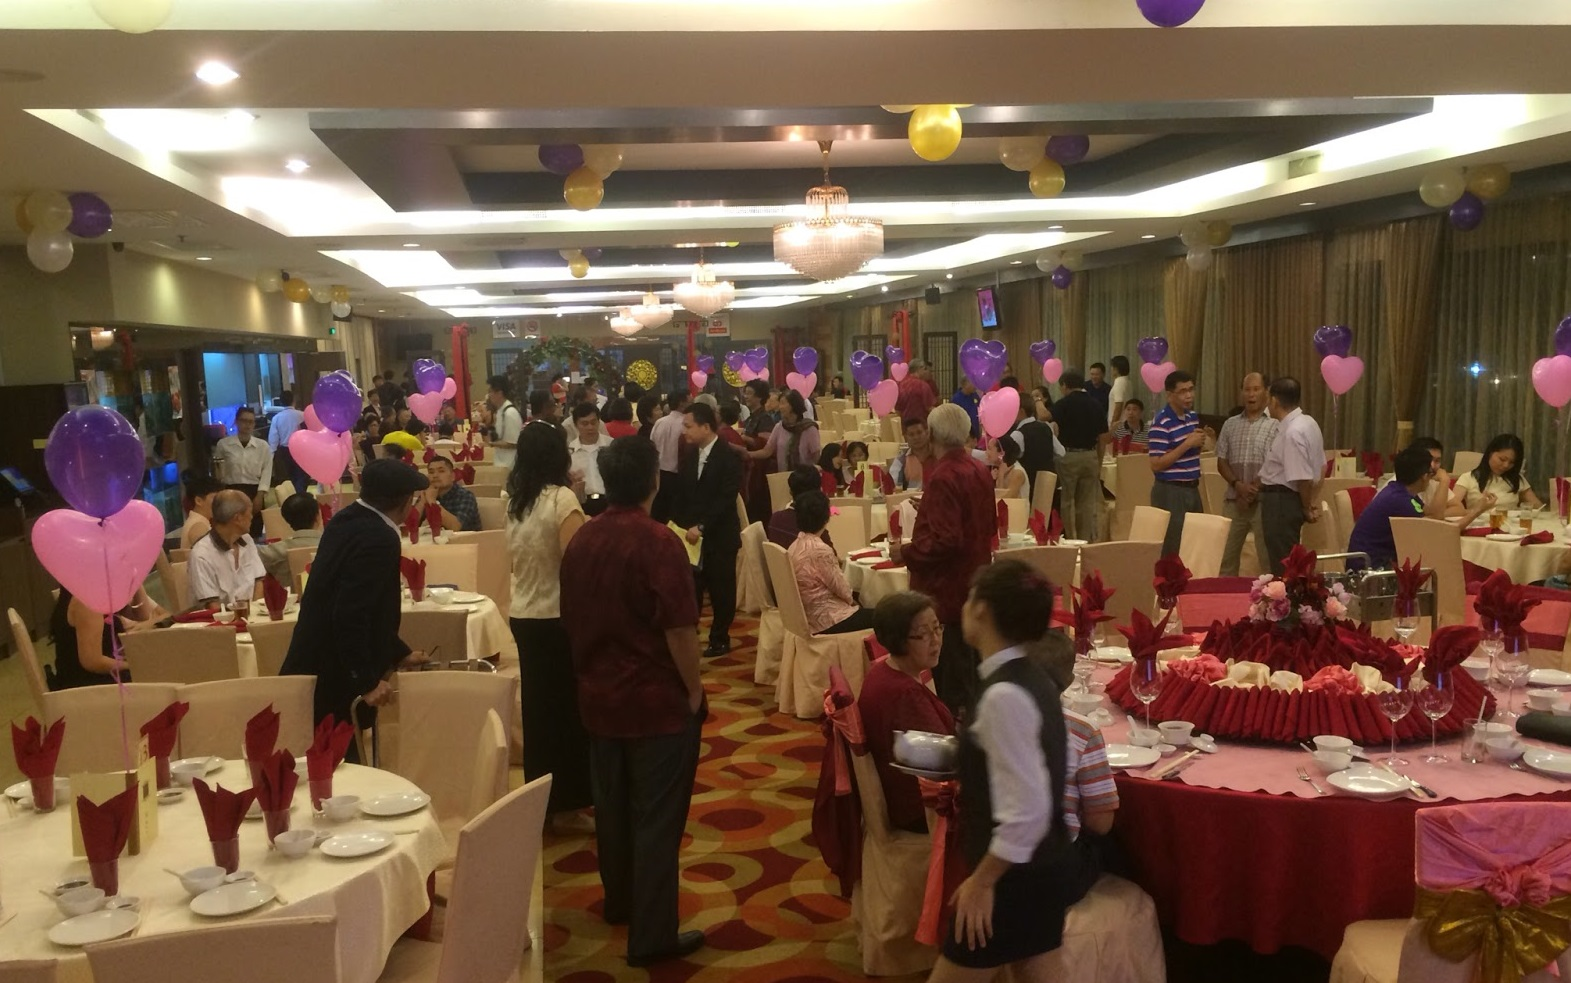 Restaurant oversea subang parade for Afghan cuisine banquet hall